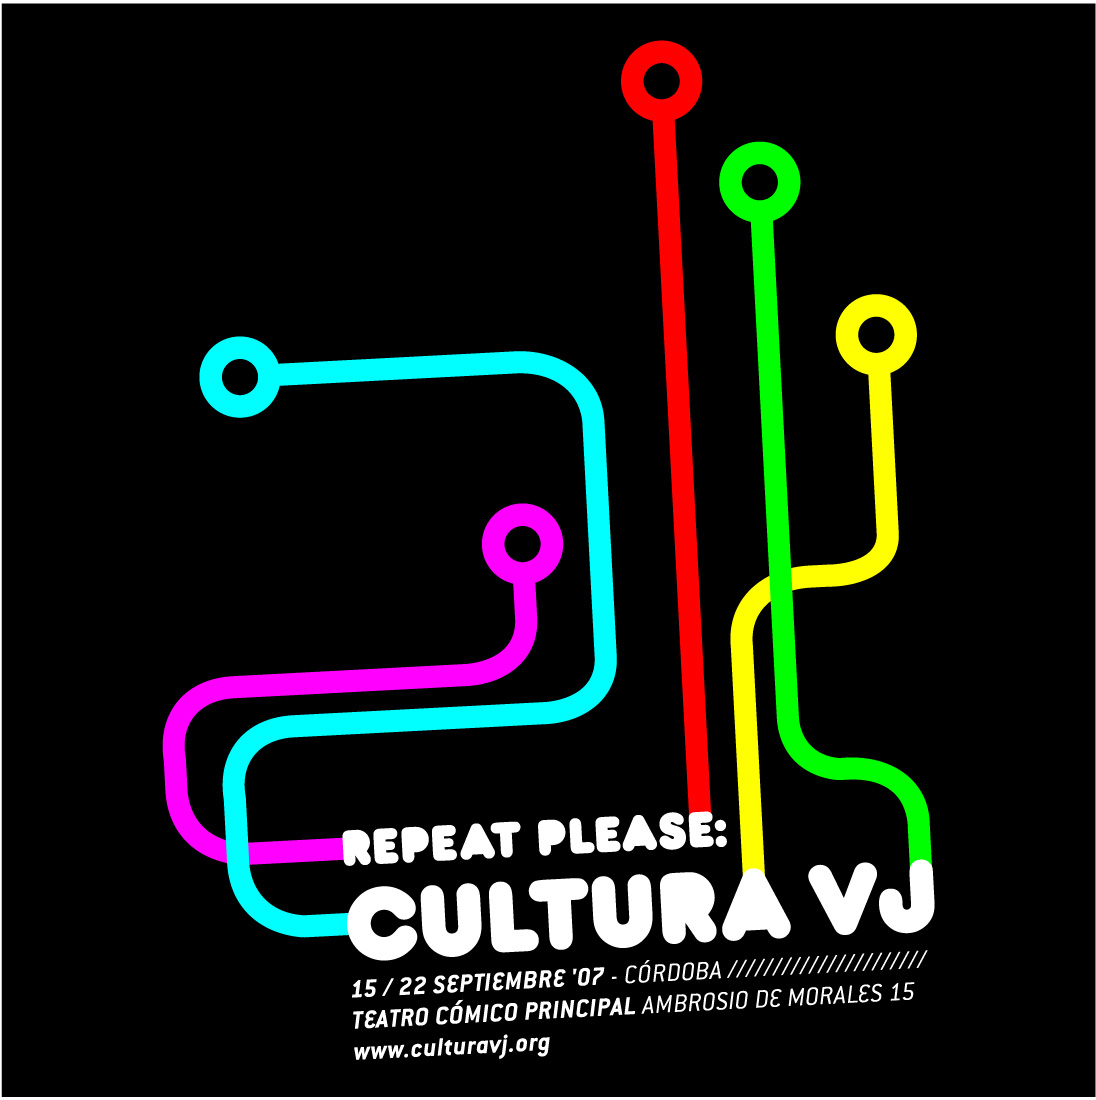 repeat please cultura vj